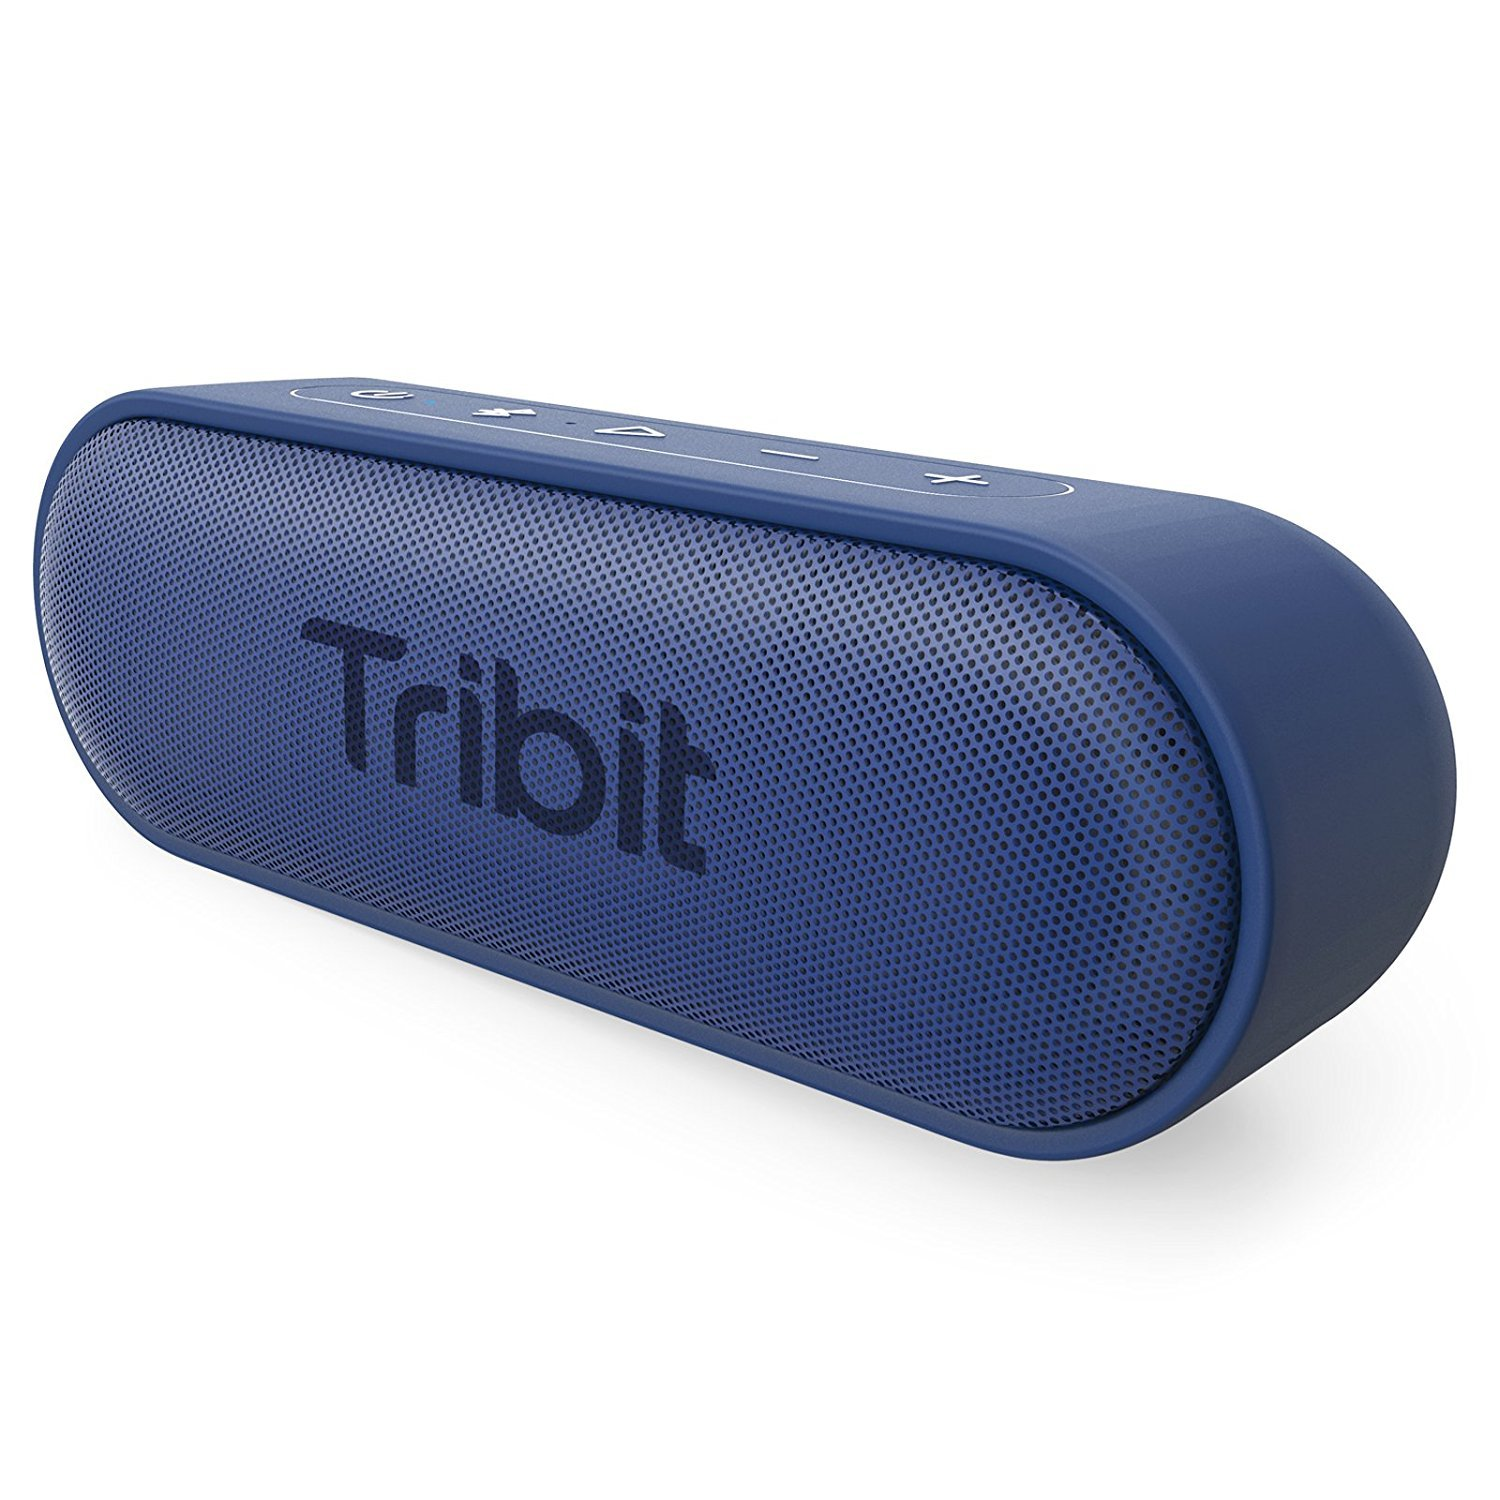 Altoparlante Bluetooth Portatile,Tribit Xsound Go 12W - BLU